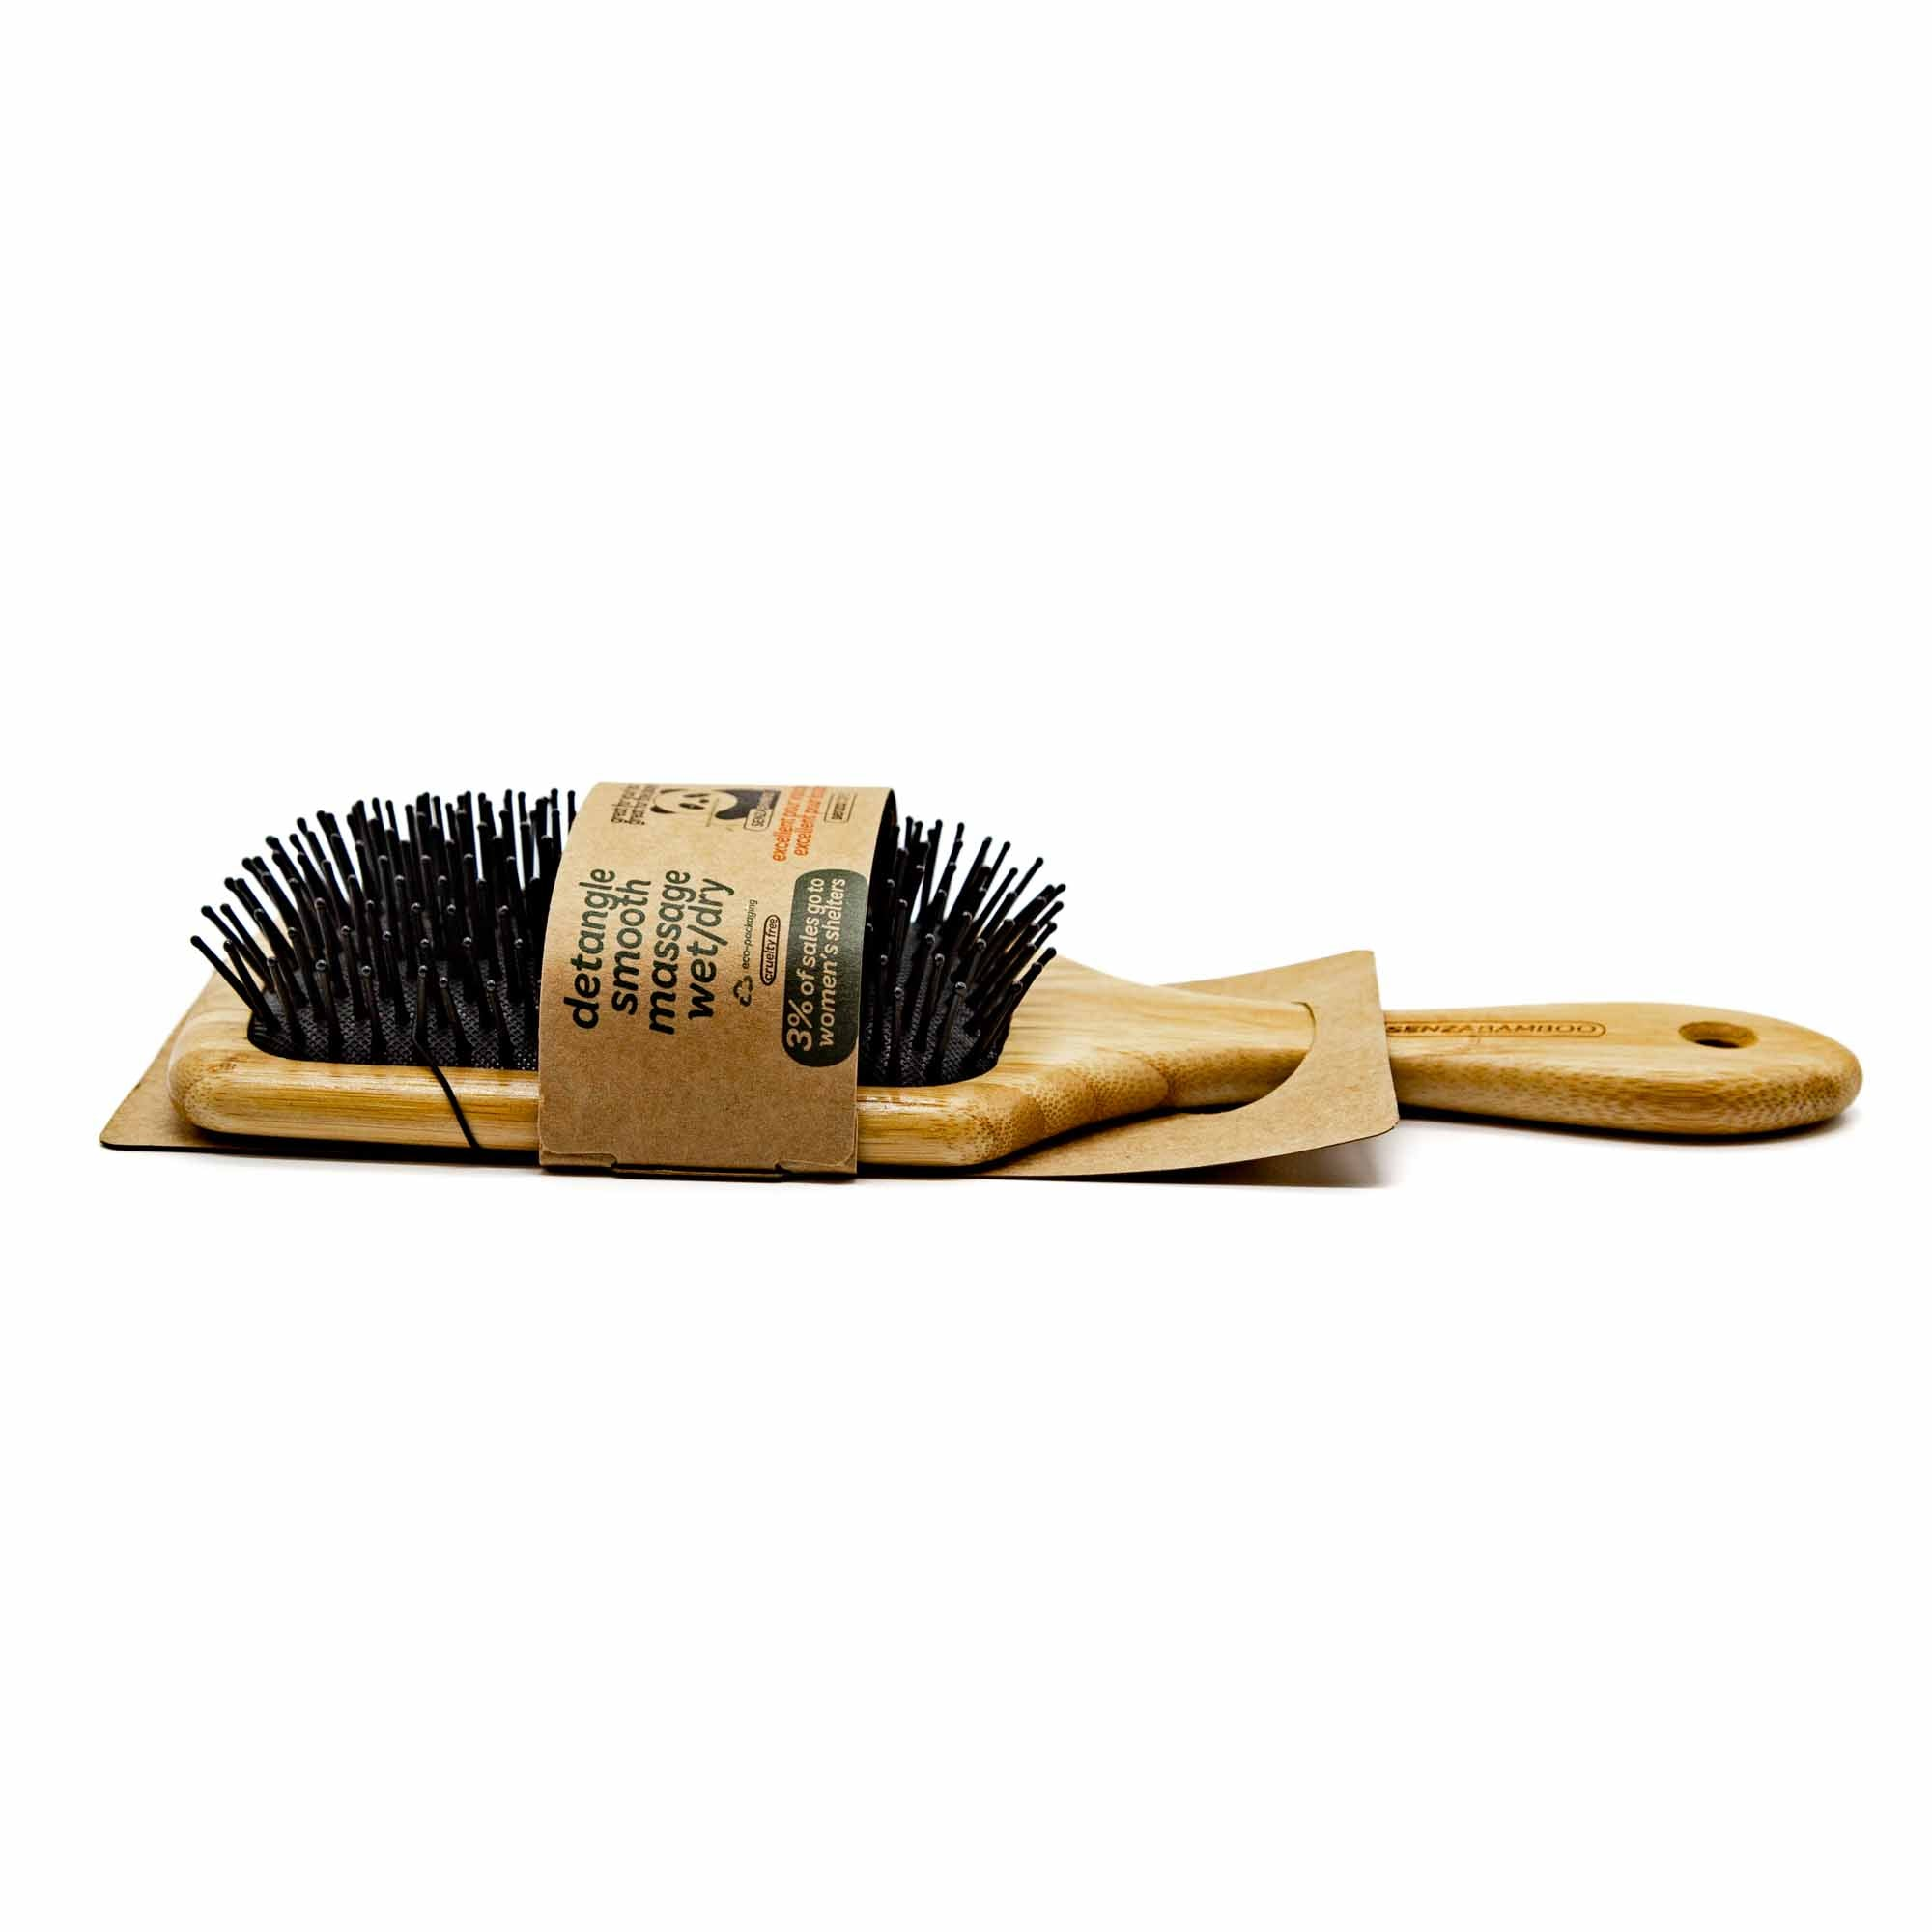 Senza Bamboo Paddle Brush - Mortise And Tenon